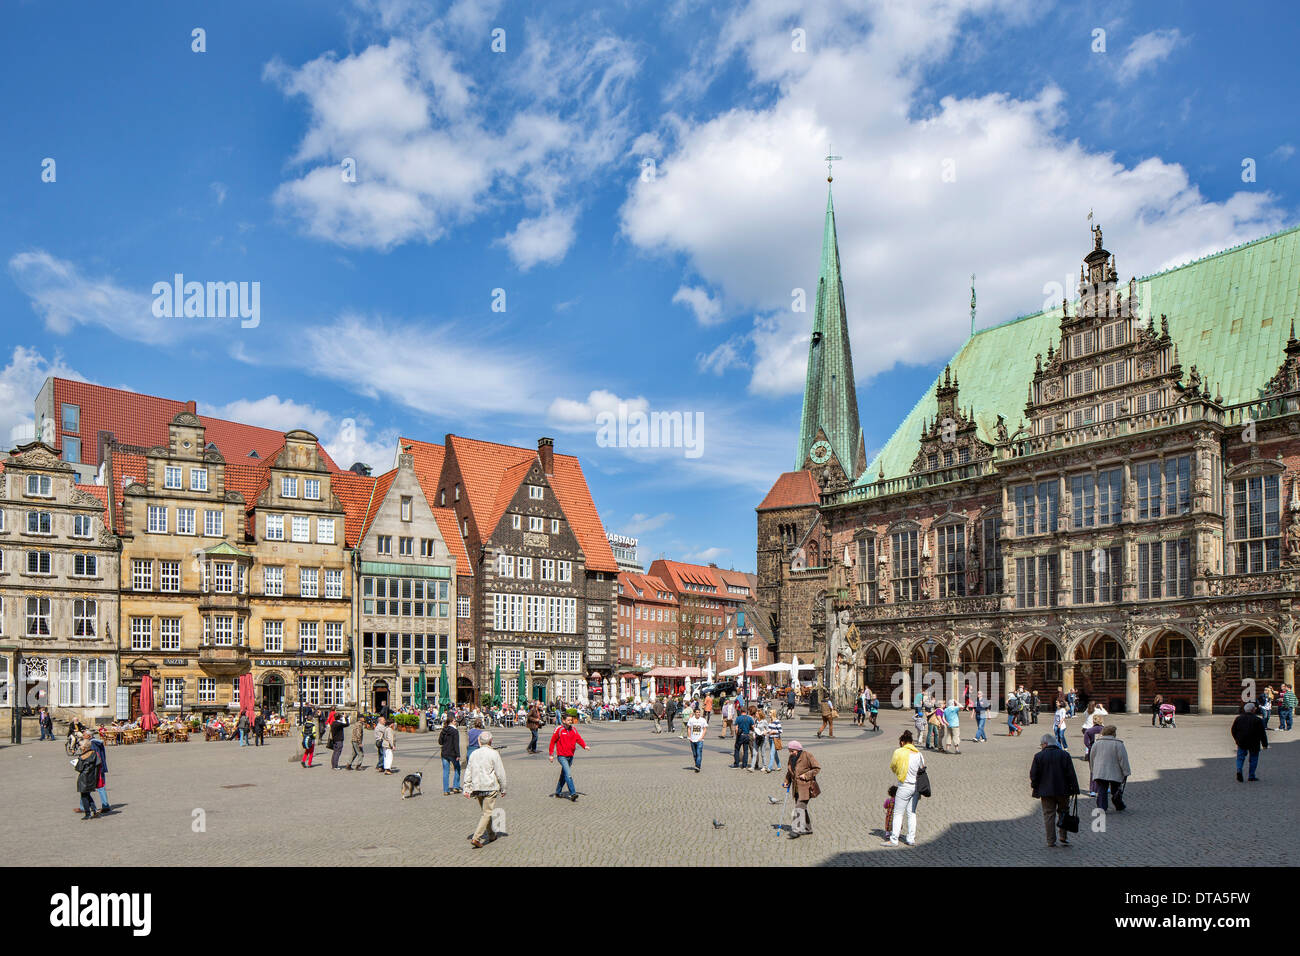 Bremen City Hall, Weser Renaissance, UNESCO World Cultural Heritage Site, Church of Our Lady and historic commercial buildings - Stock Image